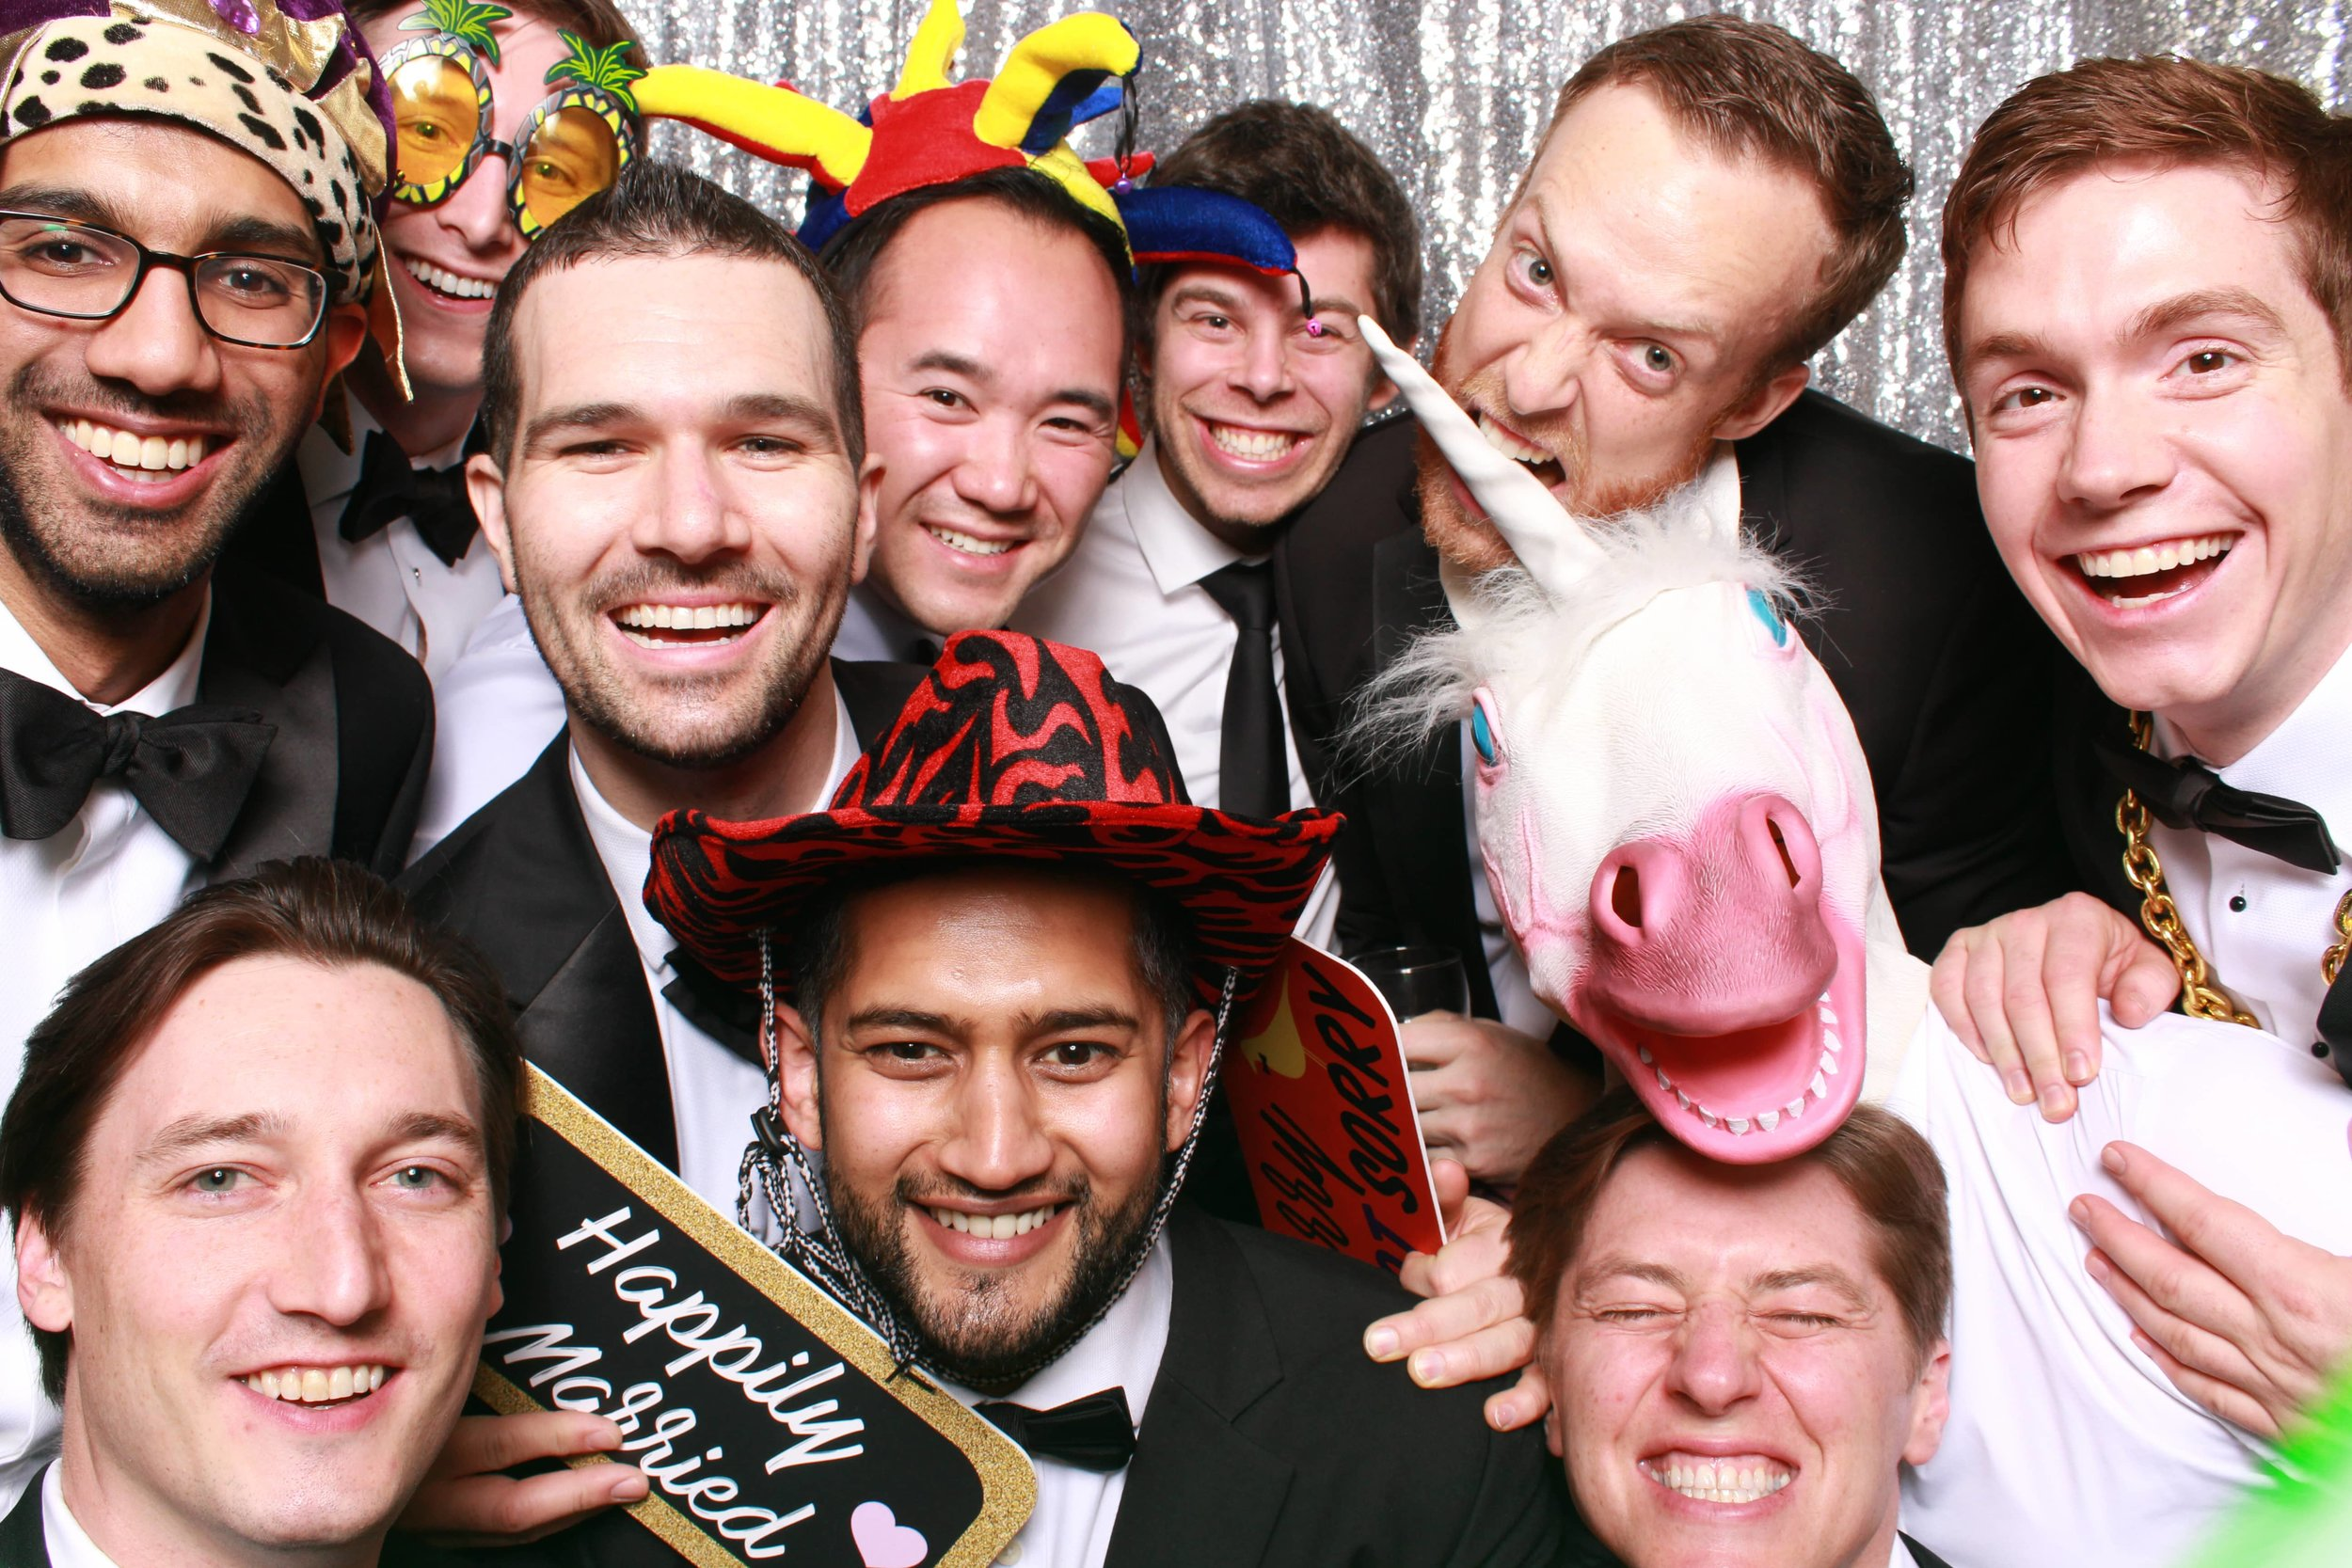 Photo Booth Rental Wanaque New Jersey.JPG